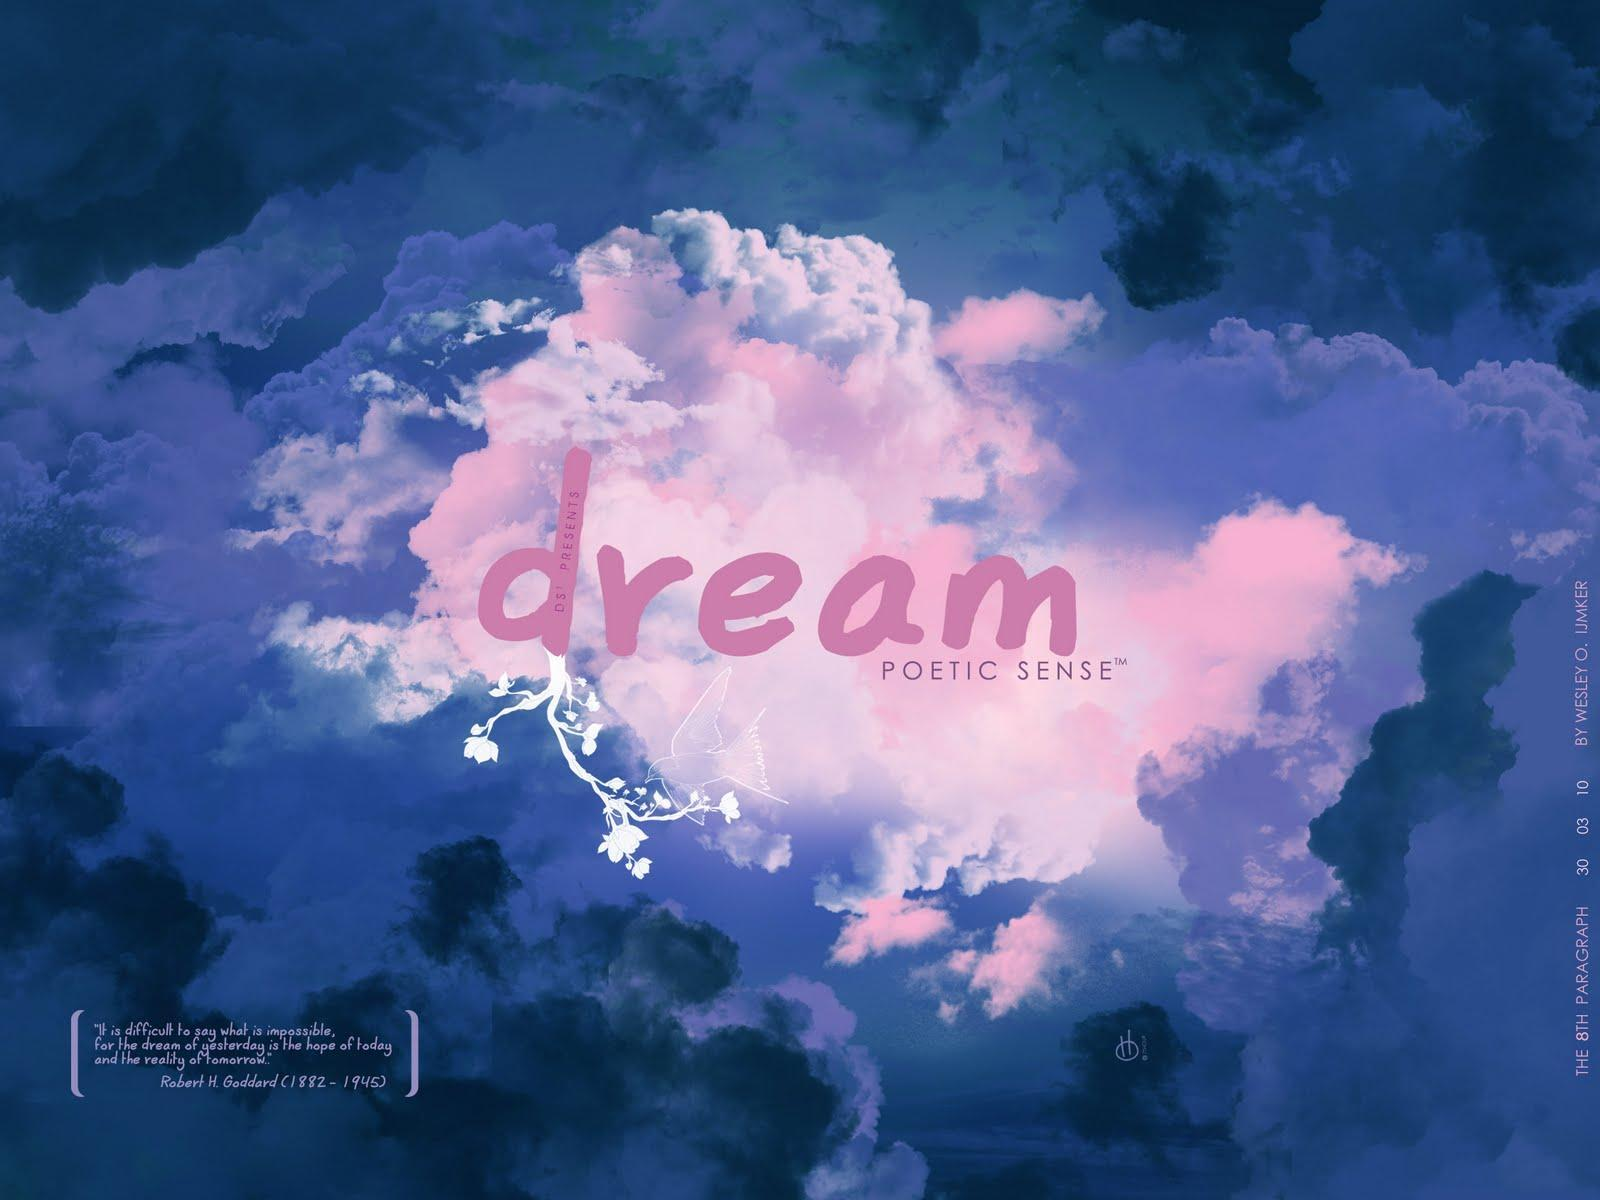 what is u r dream about?